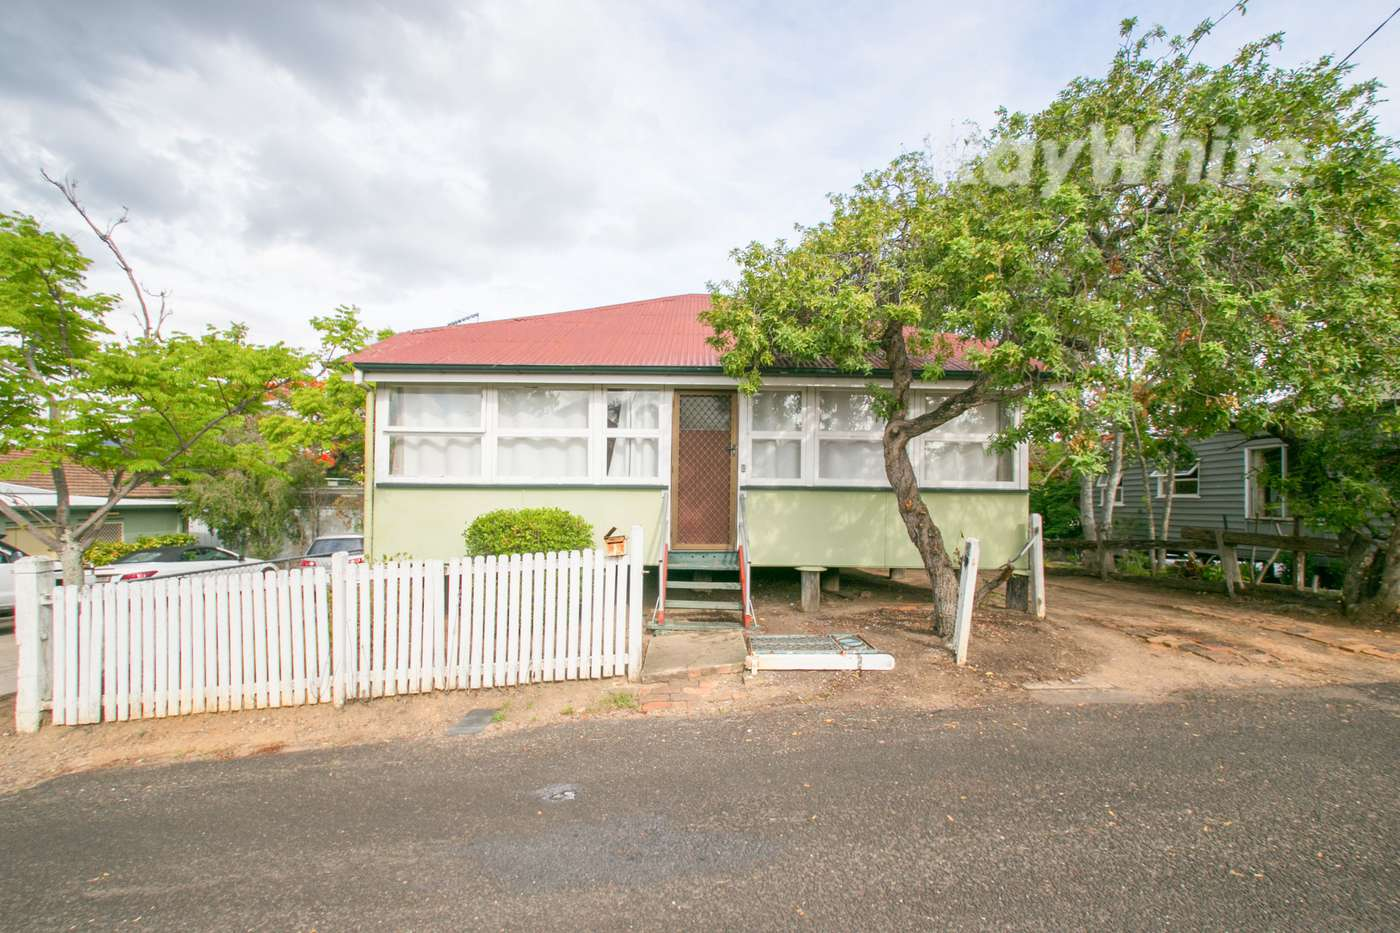 Main view of Homely house listing, 1 Murphy Lane, Ipswich, QLD 4305